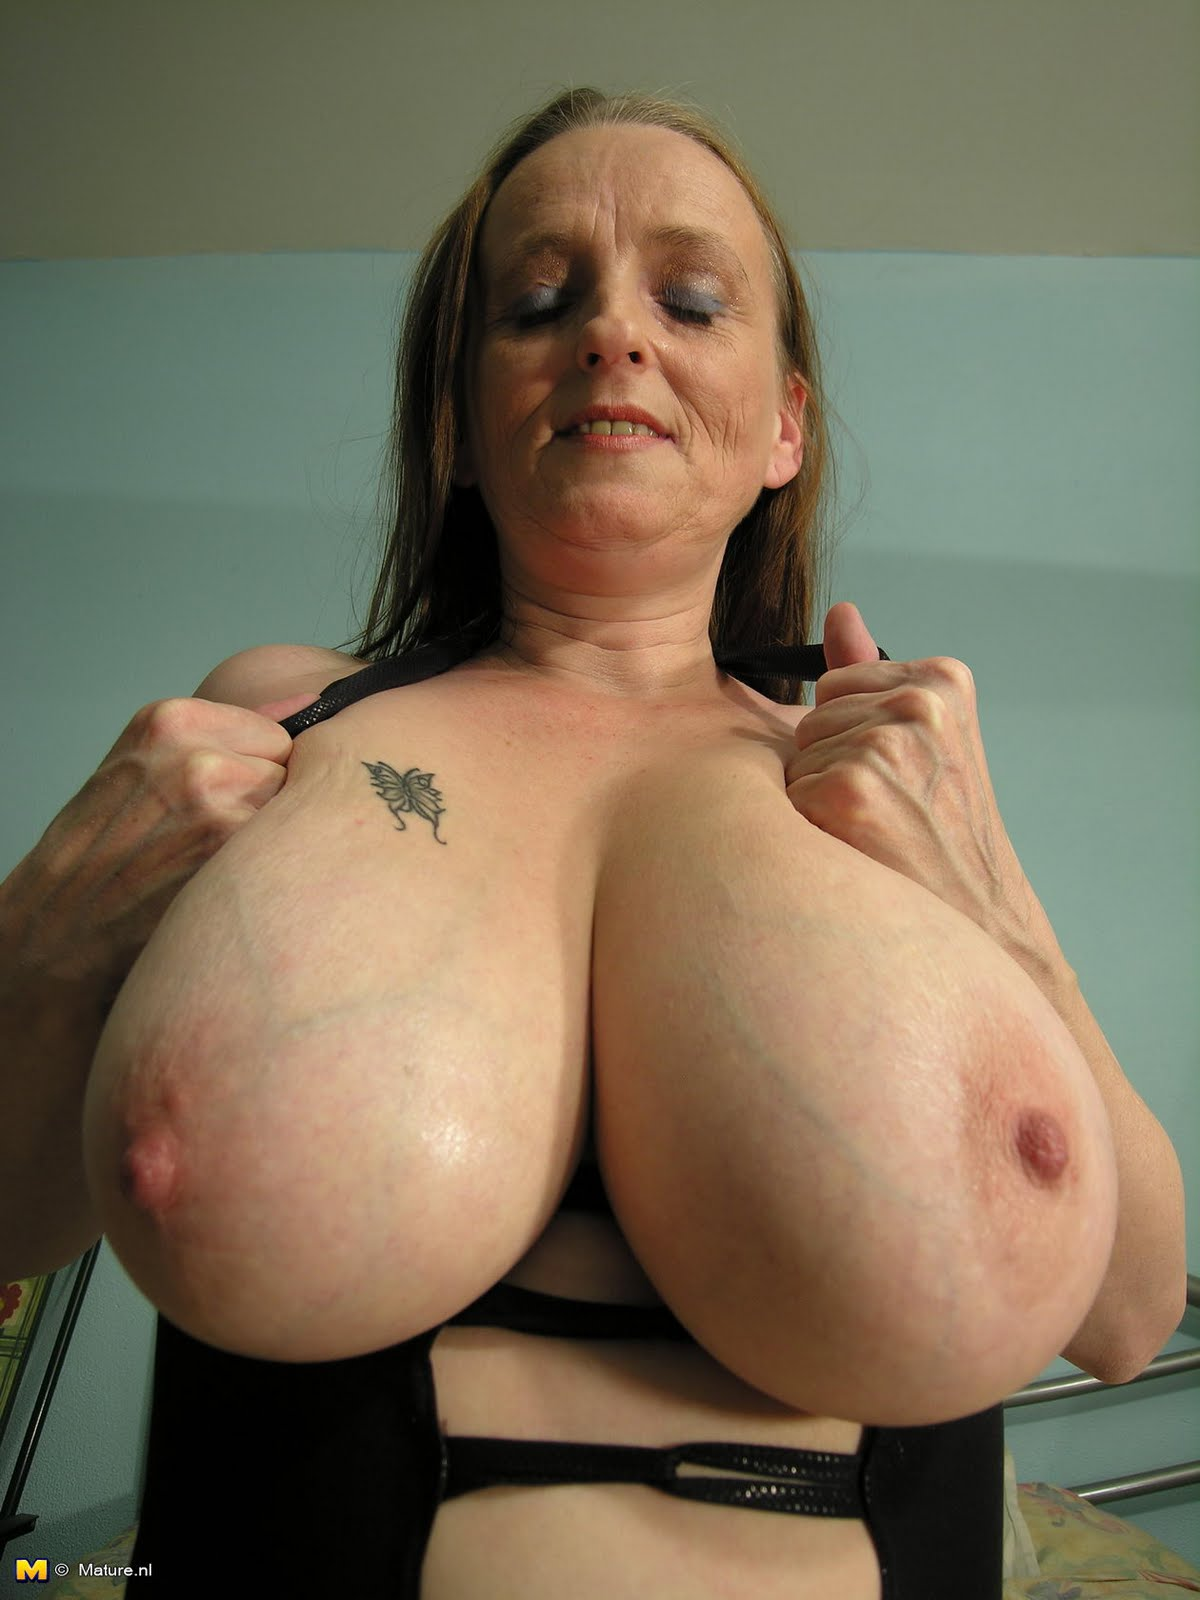 They were huge breast grannies women gorgeous!!!